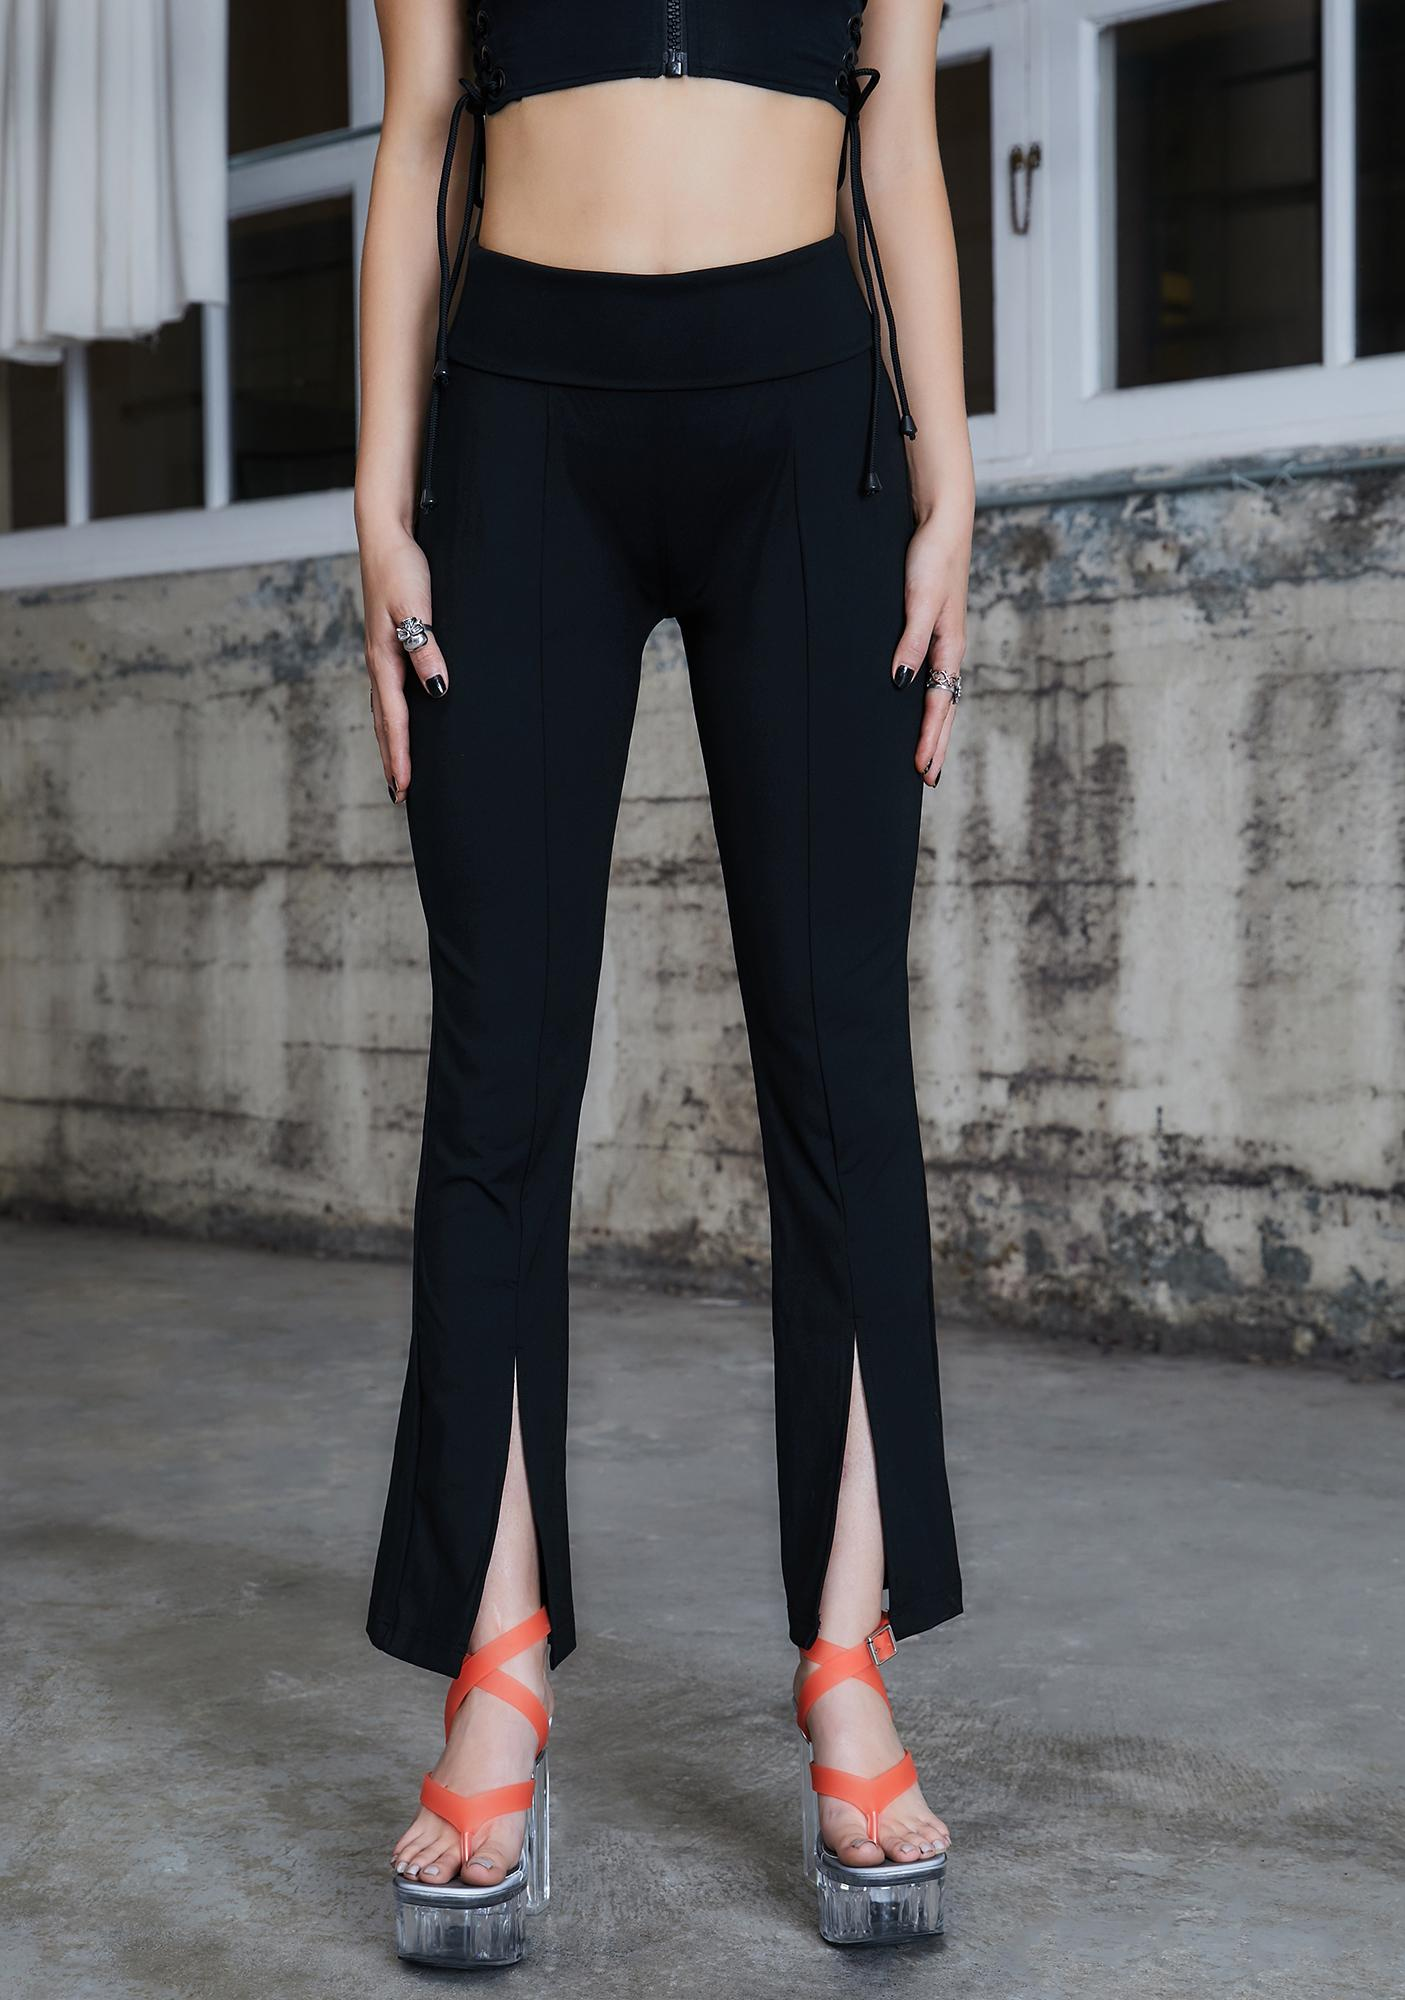 DARKER WAVS Kickdrum Flared Split Leggings